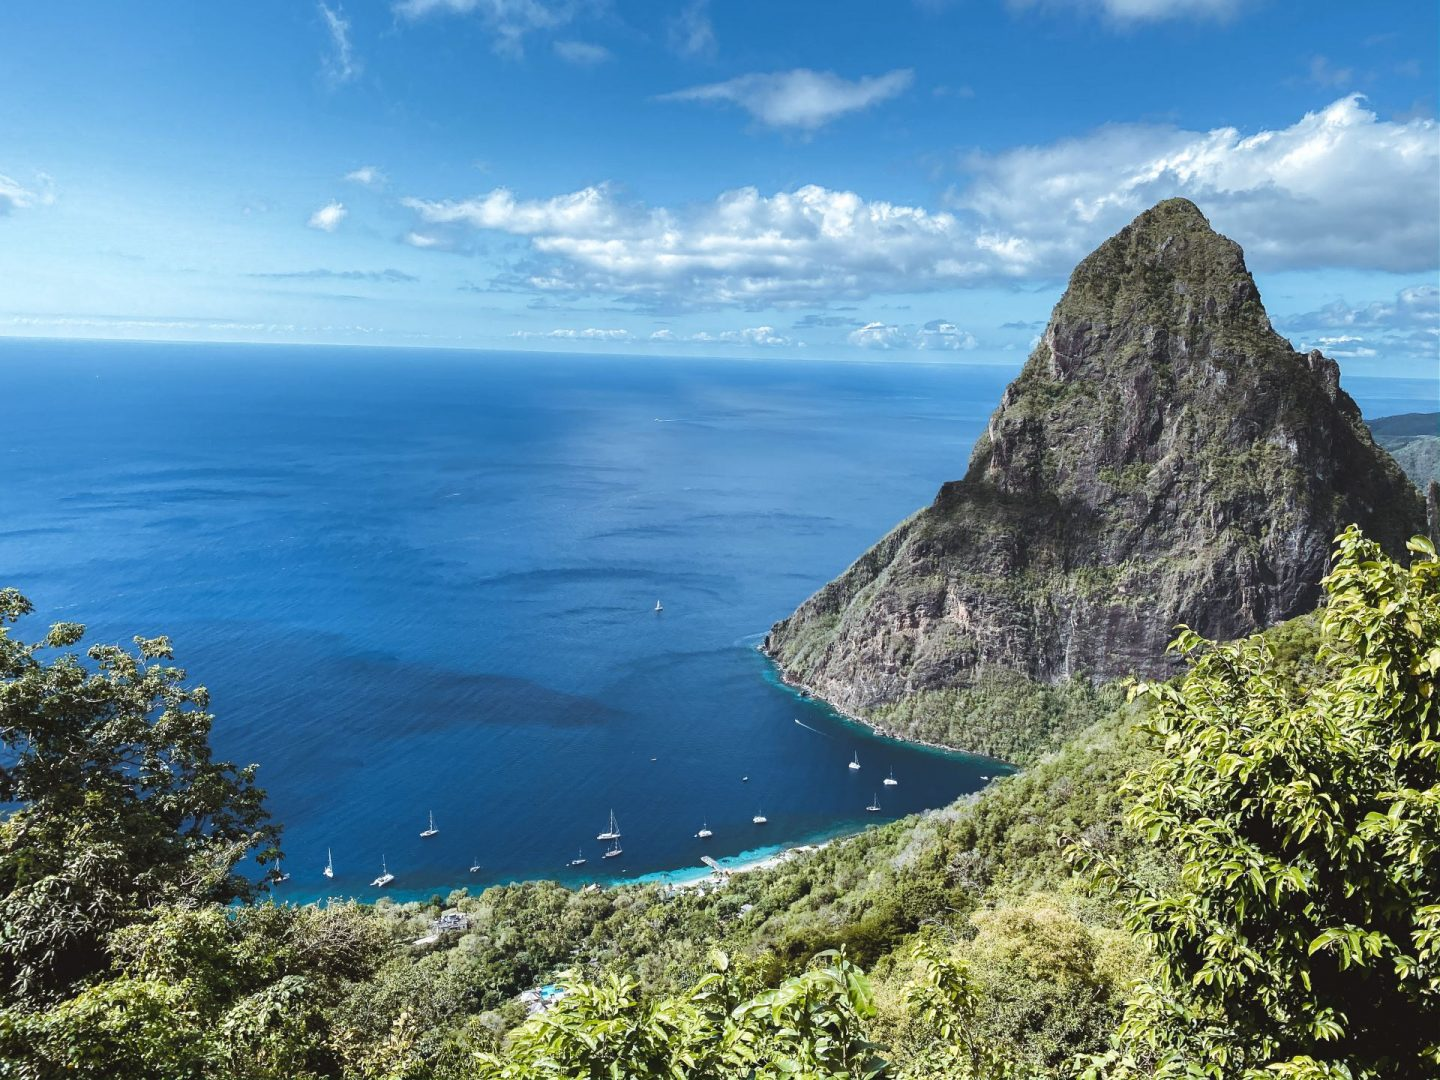 Hiking the Tet Paul Nature Trail in St. Lucia